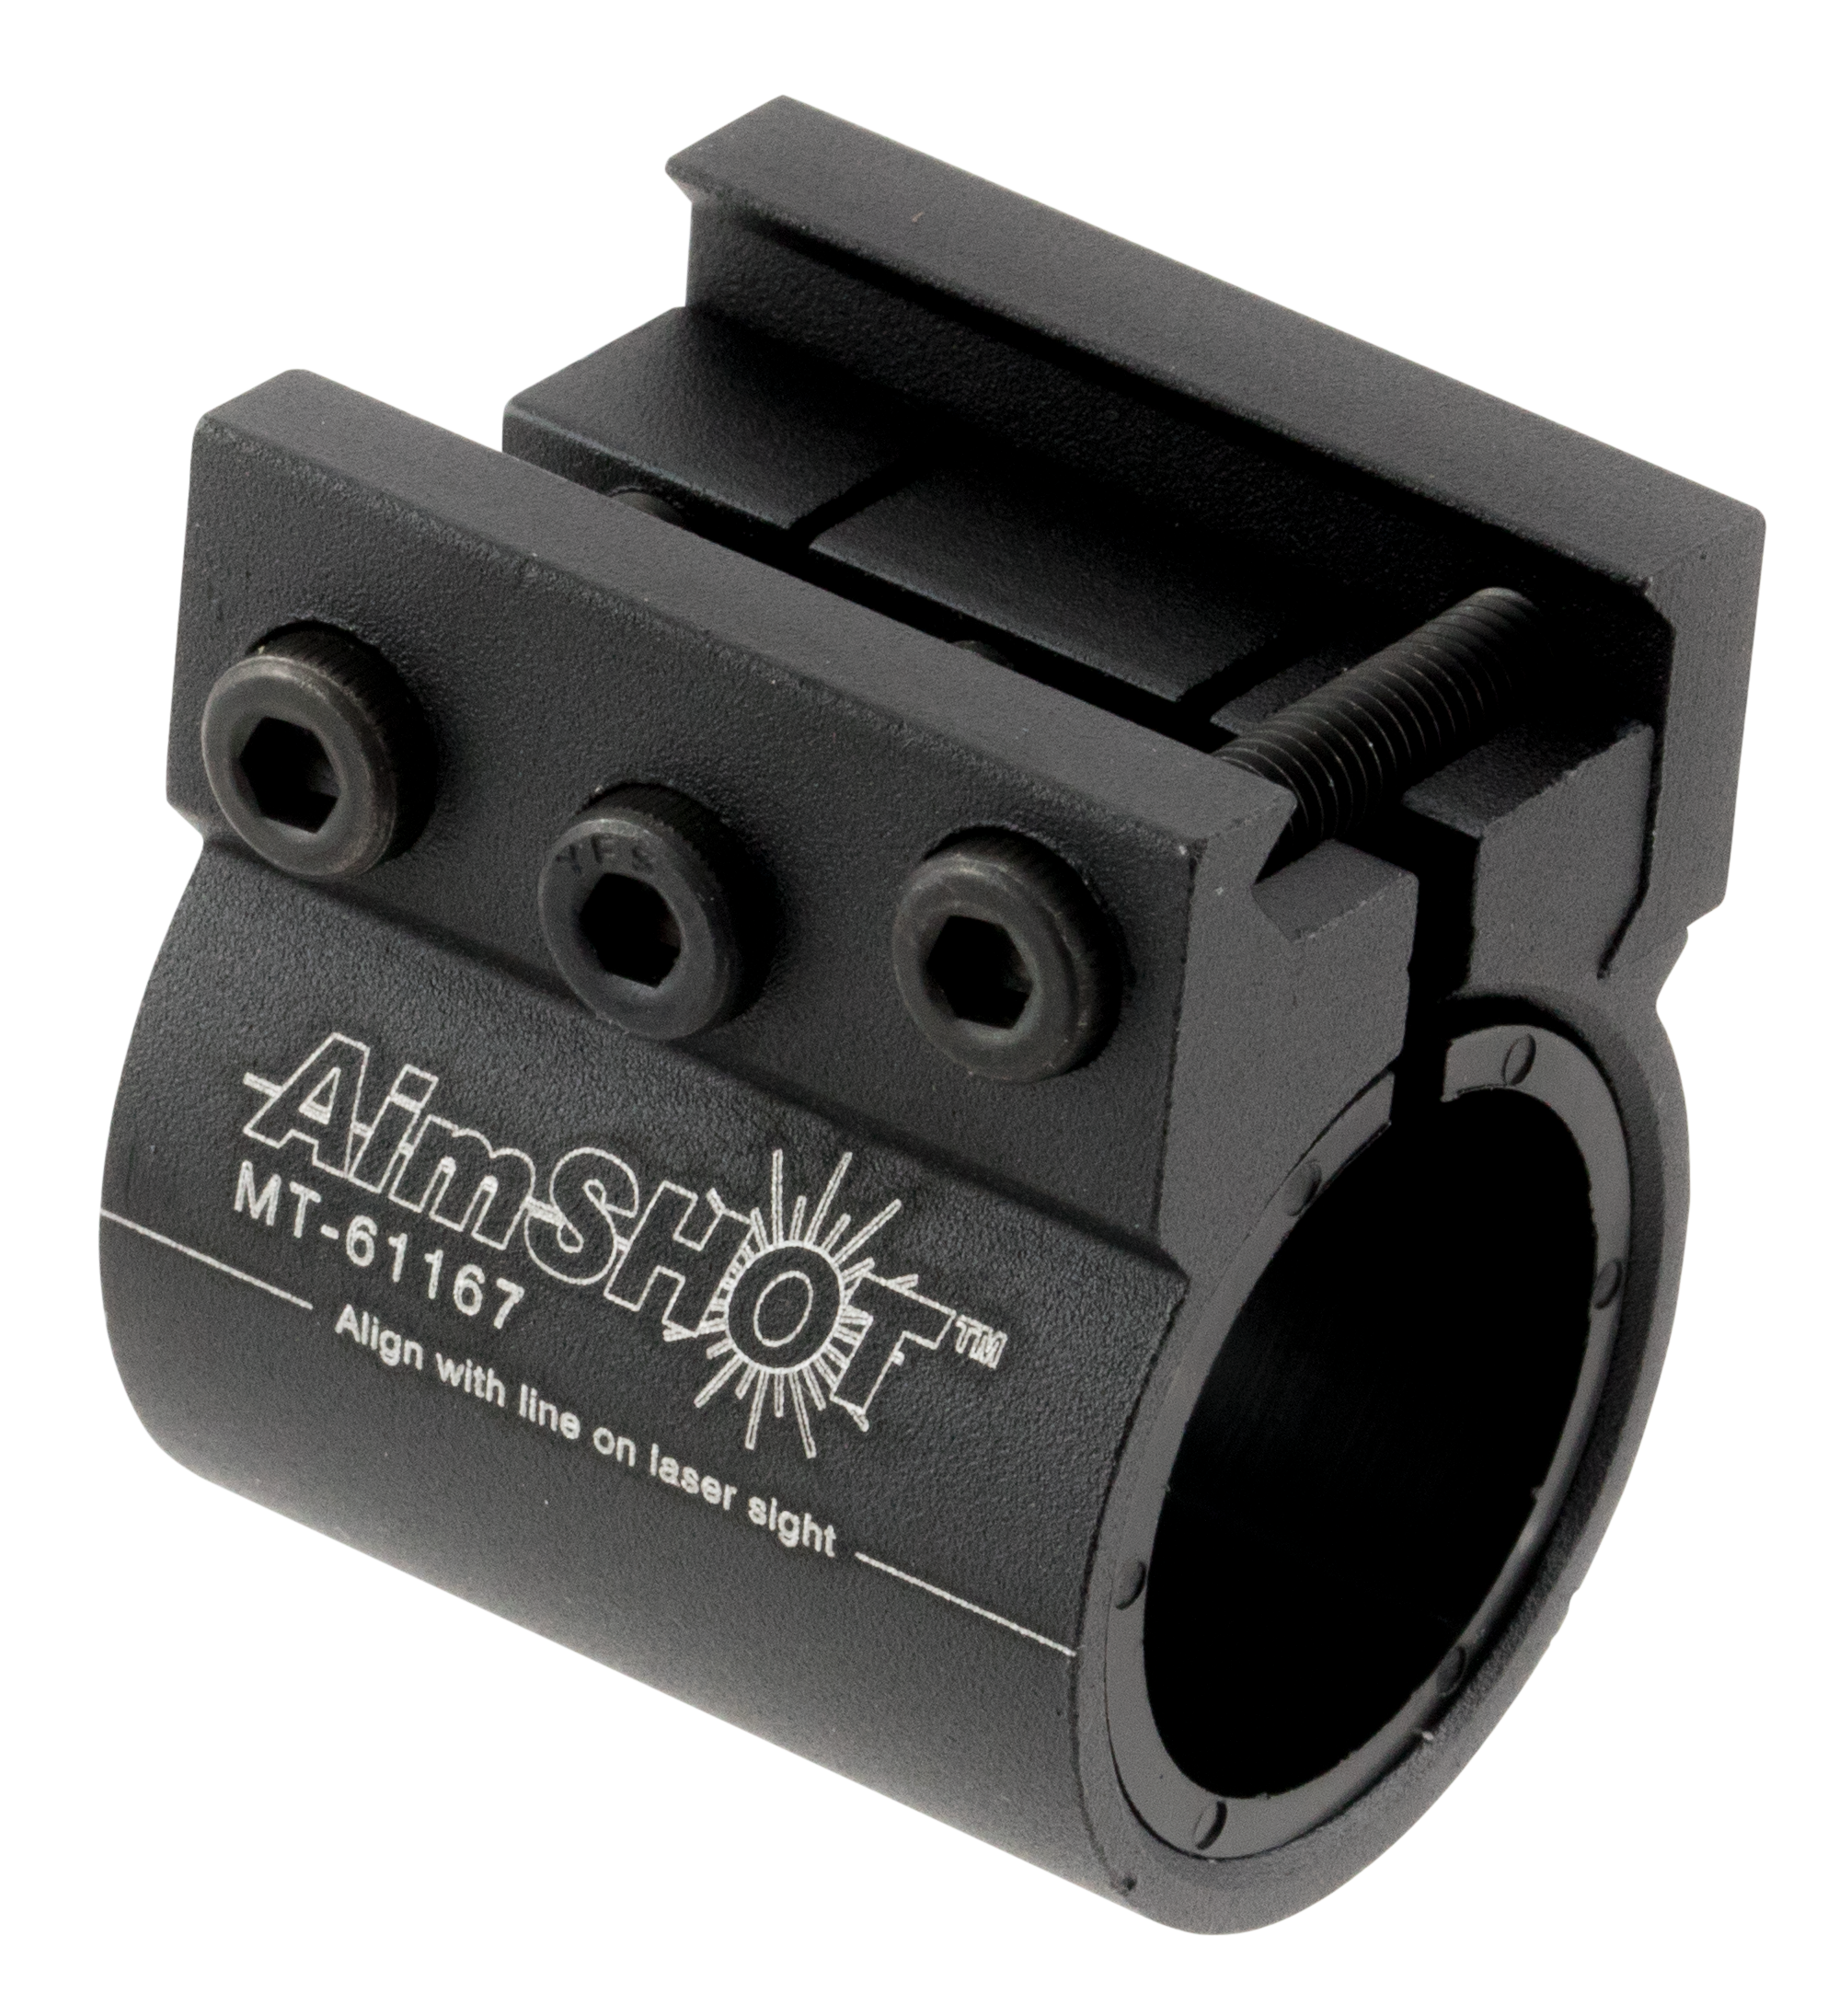 Aimshot MT61167 Laser Mount For 8067 Weaver Style Matte Black Finish